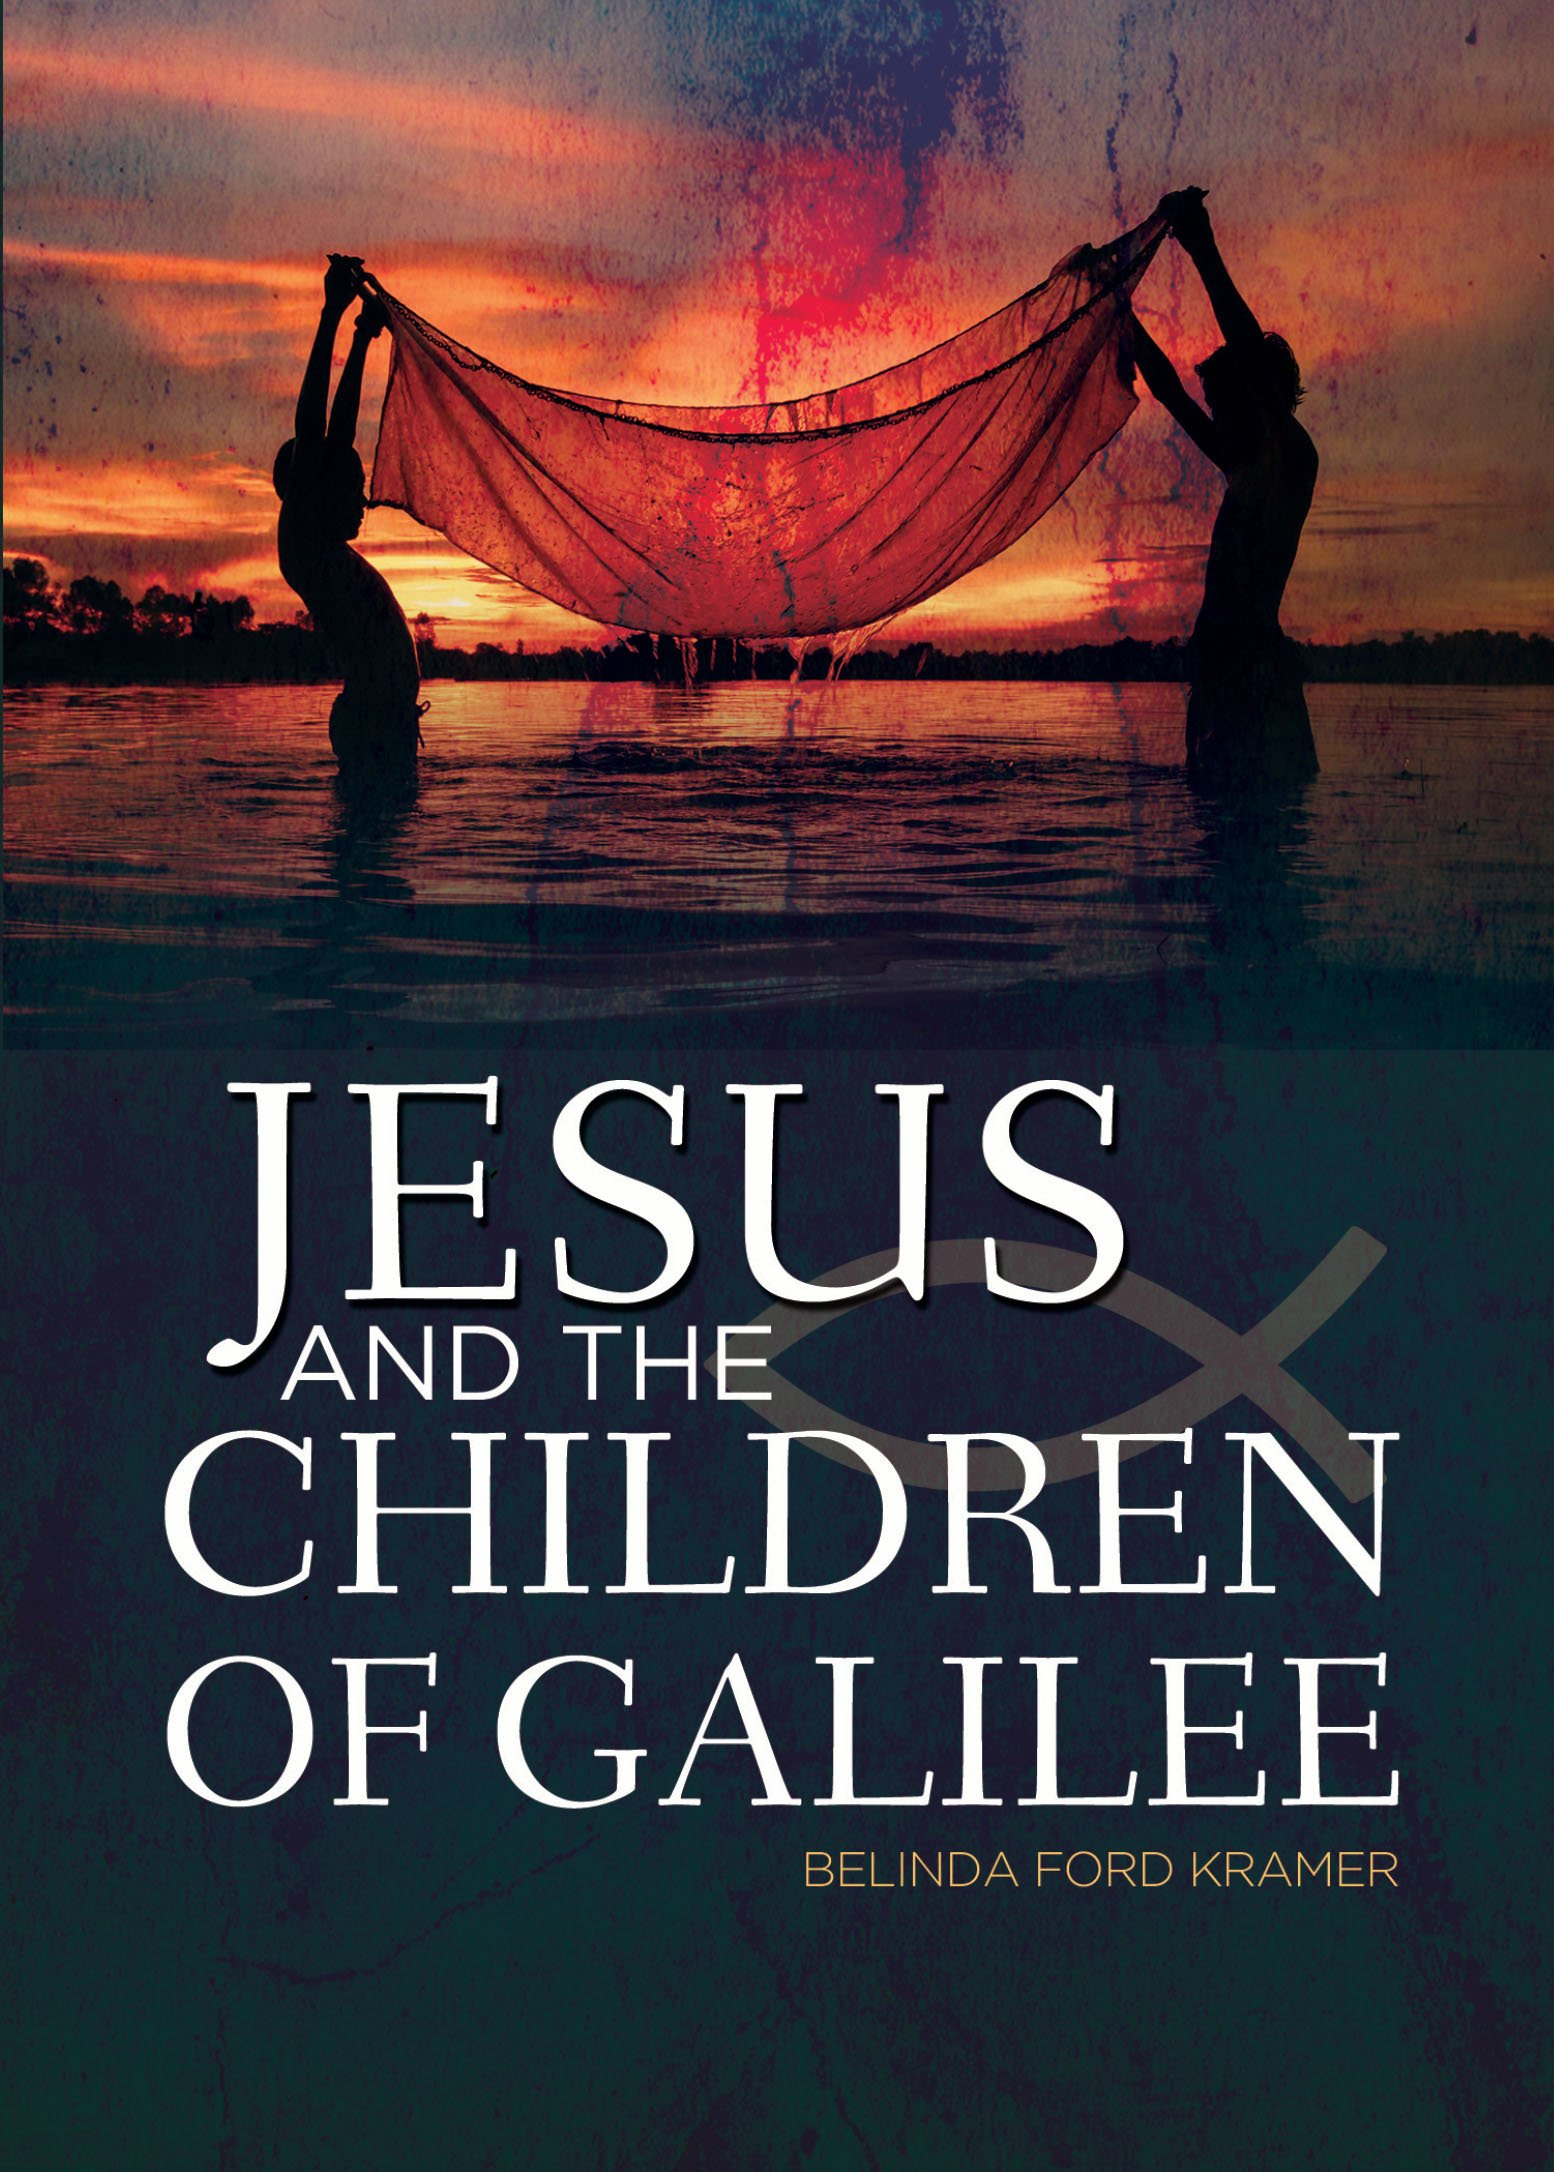 Jesus and the Children of Galilee